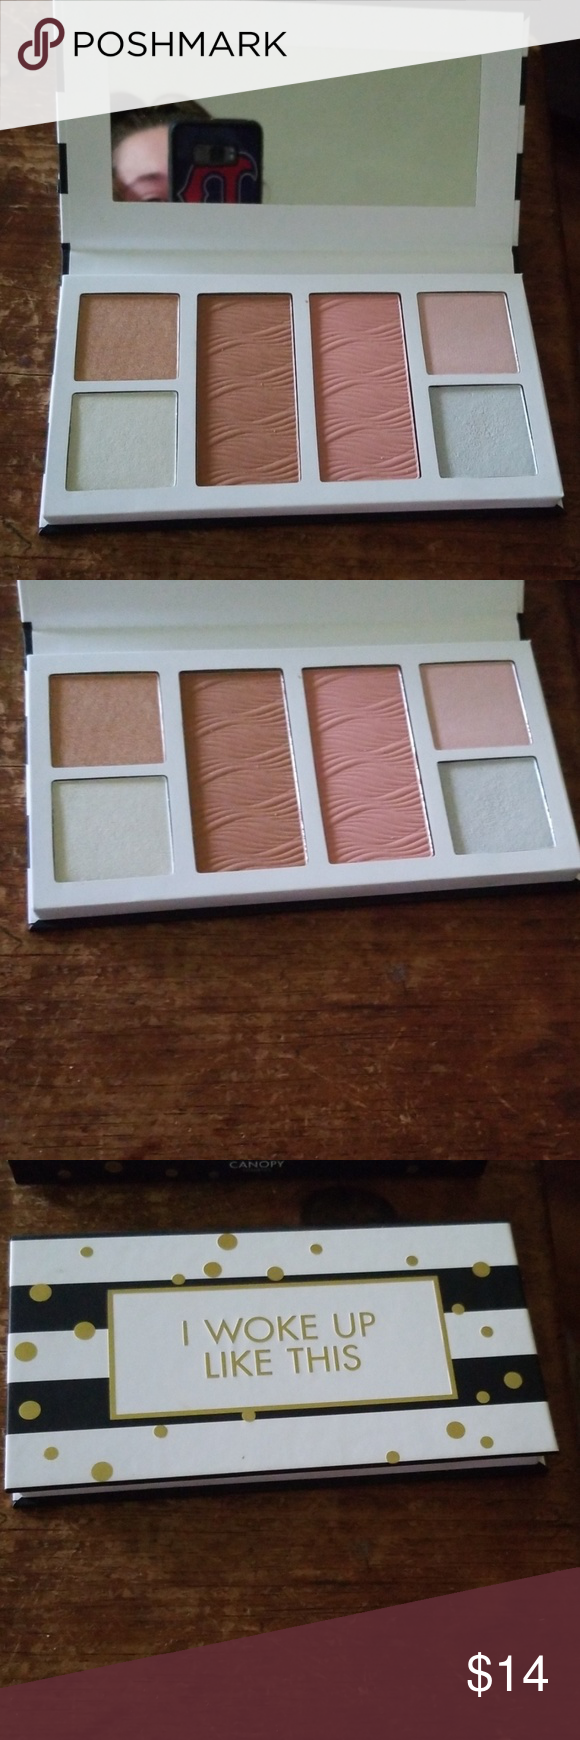 Canopy Cosmetics Full Face Palette Clothes design